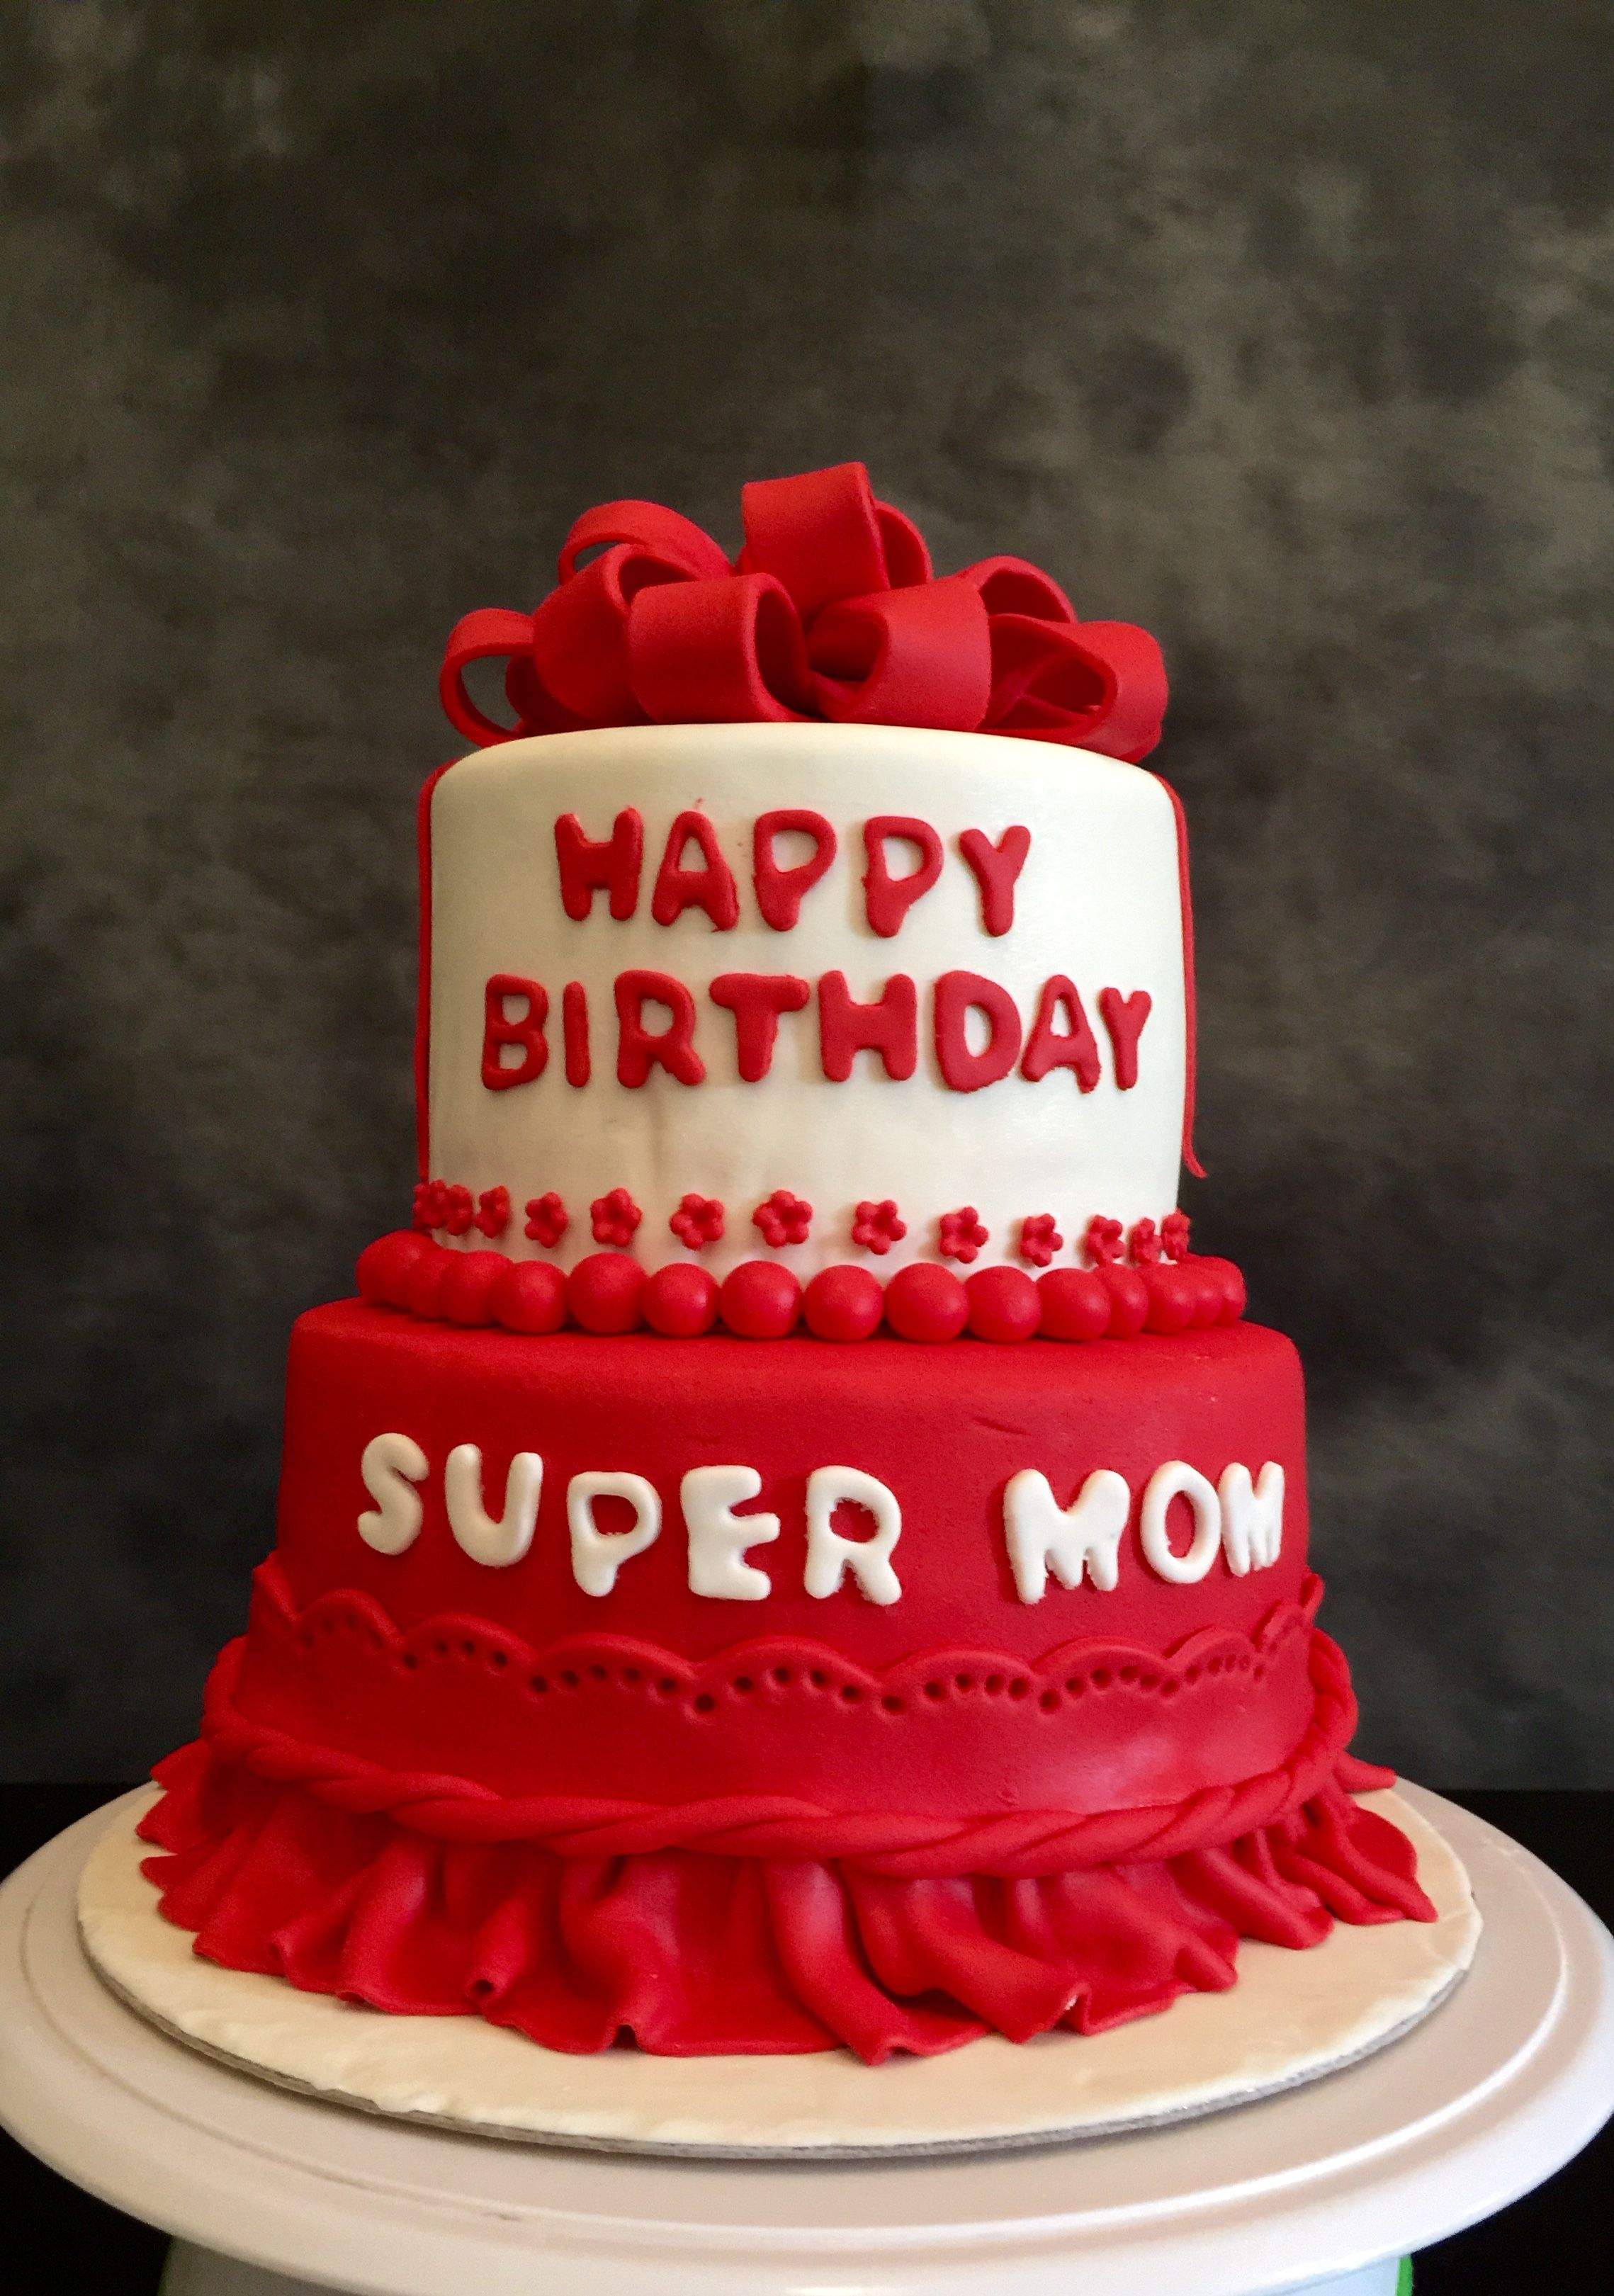 Mother Birthday Cake Super Mom Laila Horany Cakes La Panetteria